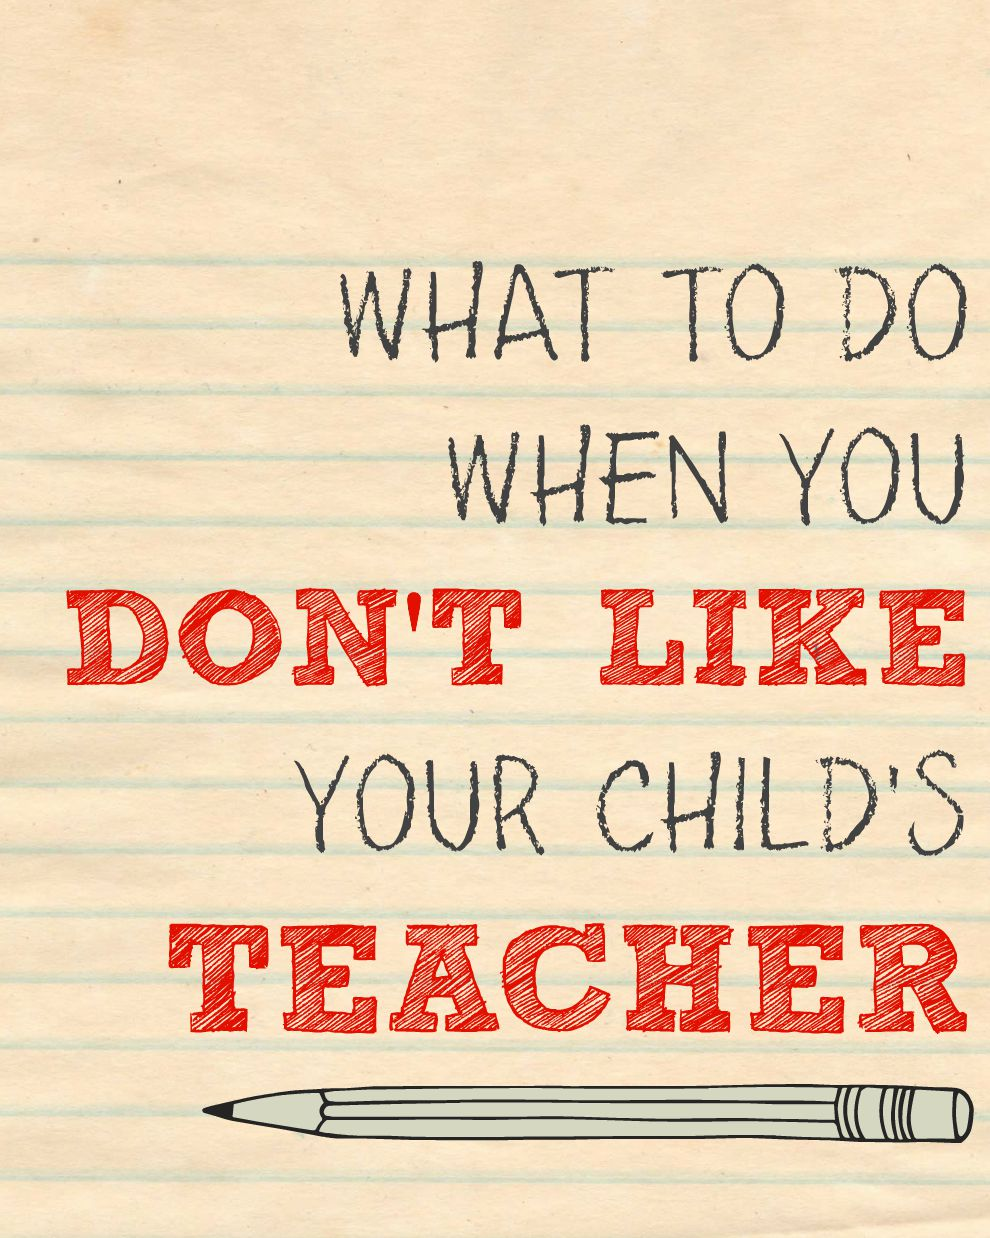 Don't like your child's teacher? Here's what to do if you don't like your child's teacher.